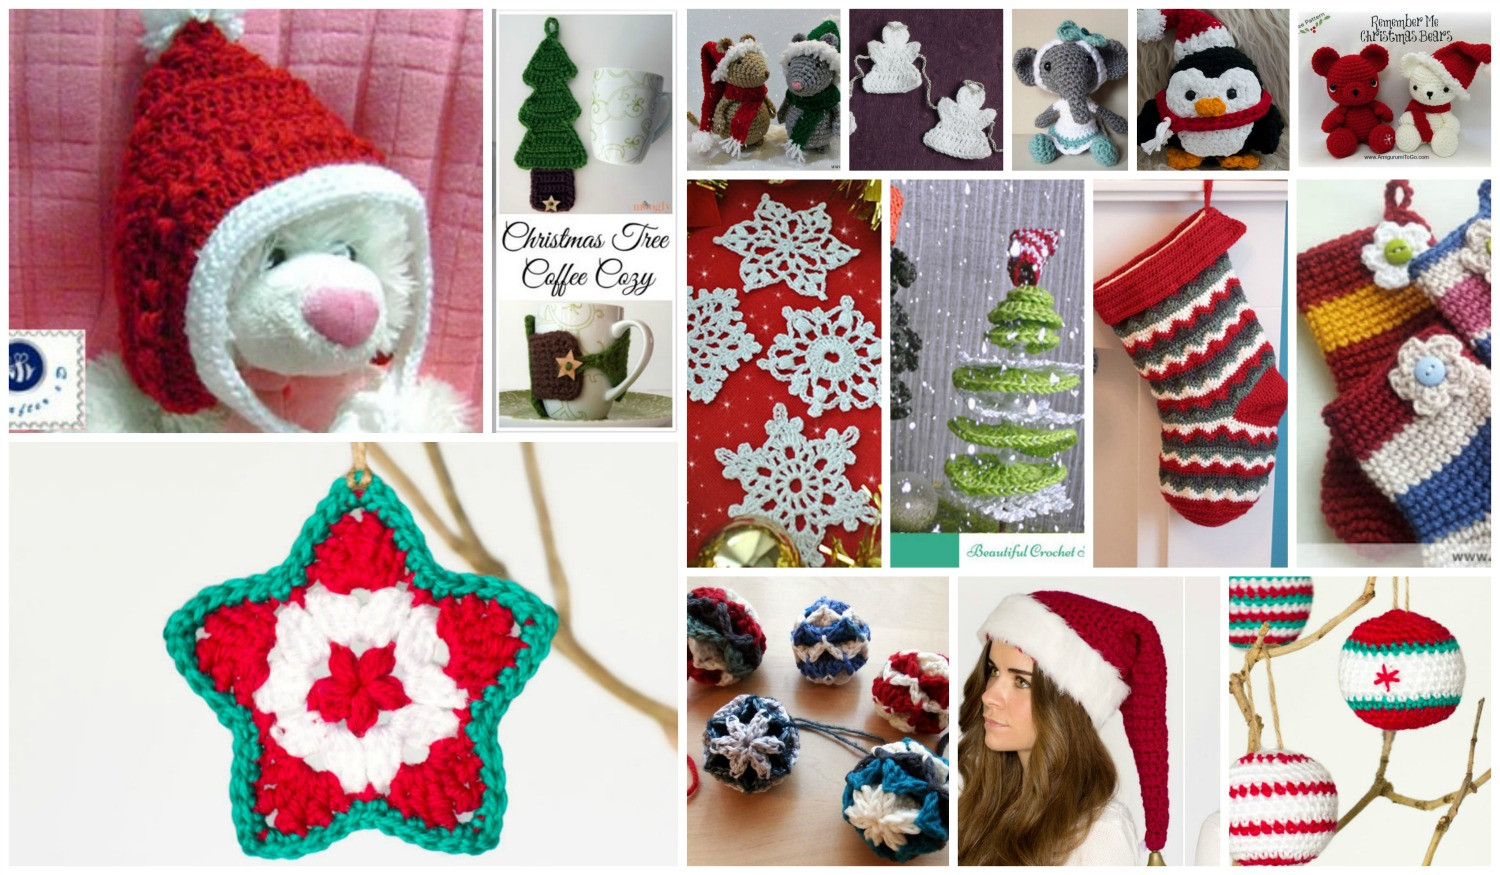 Crochet ornament New Crochet Christmas ornaments 15 Most Loved ornaments Of Unique 43 Images Crochet ornament